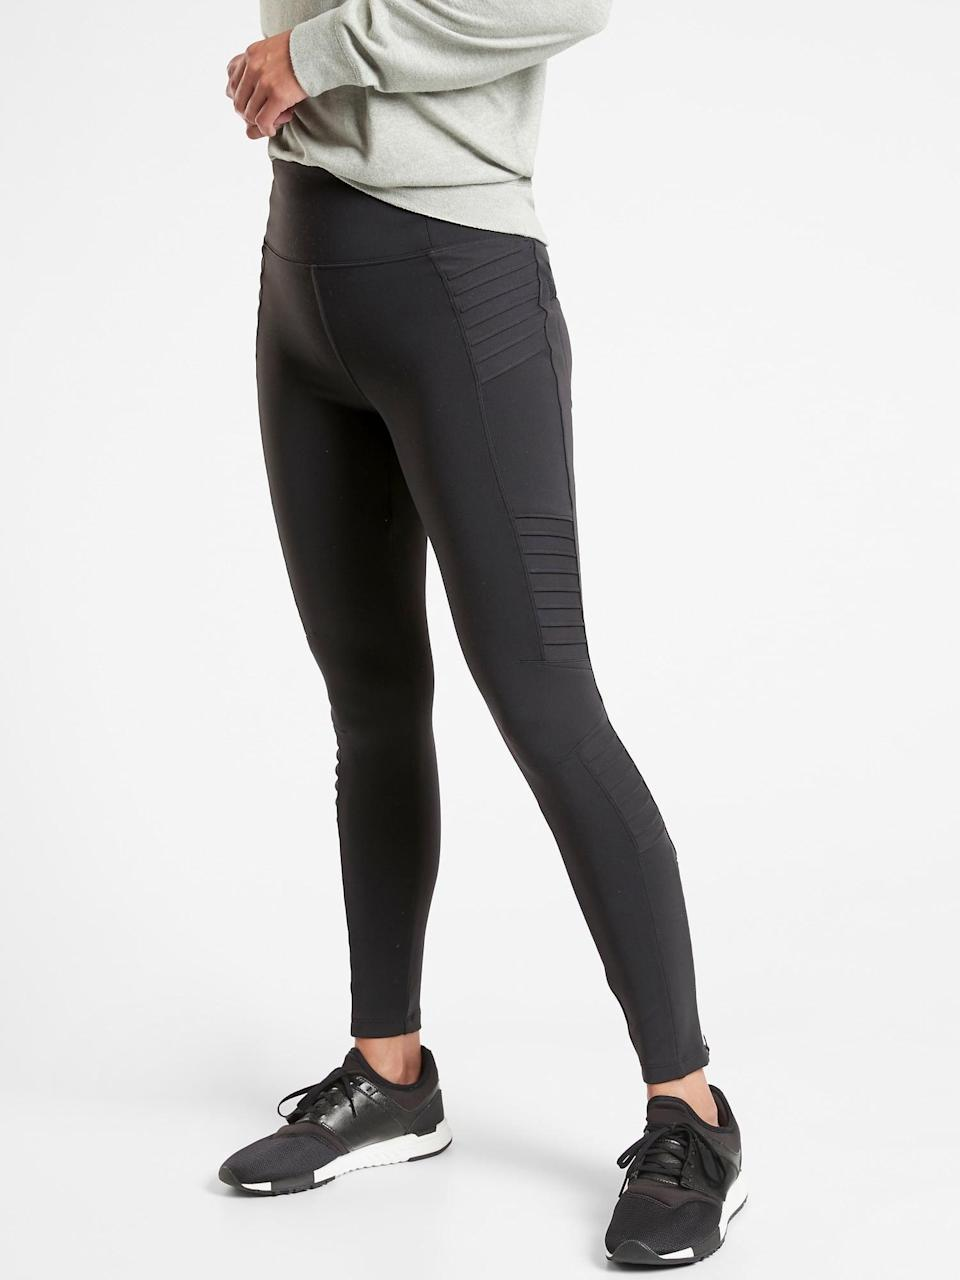 <p>Besides loving the look of the <span>Athleta Delancey Moto Tight</span> ($98), the fabric is light and stretchy. This makes them perfect for working, running errands, or just hanging out.</p>